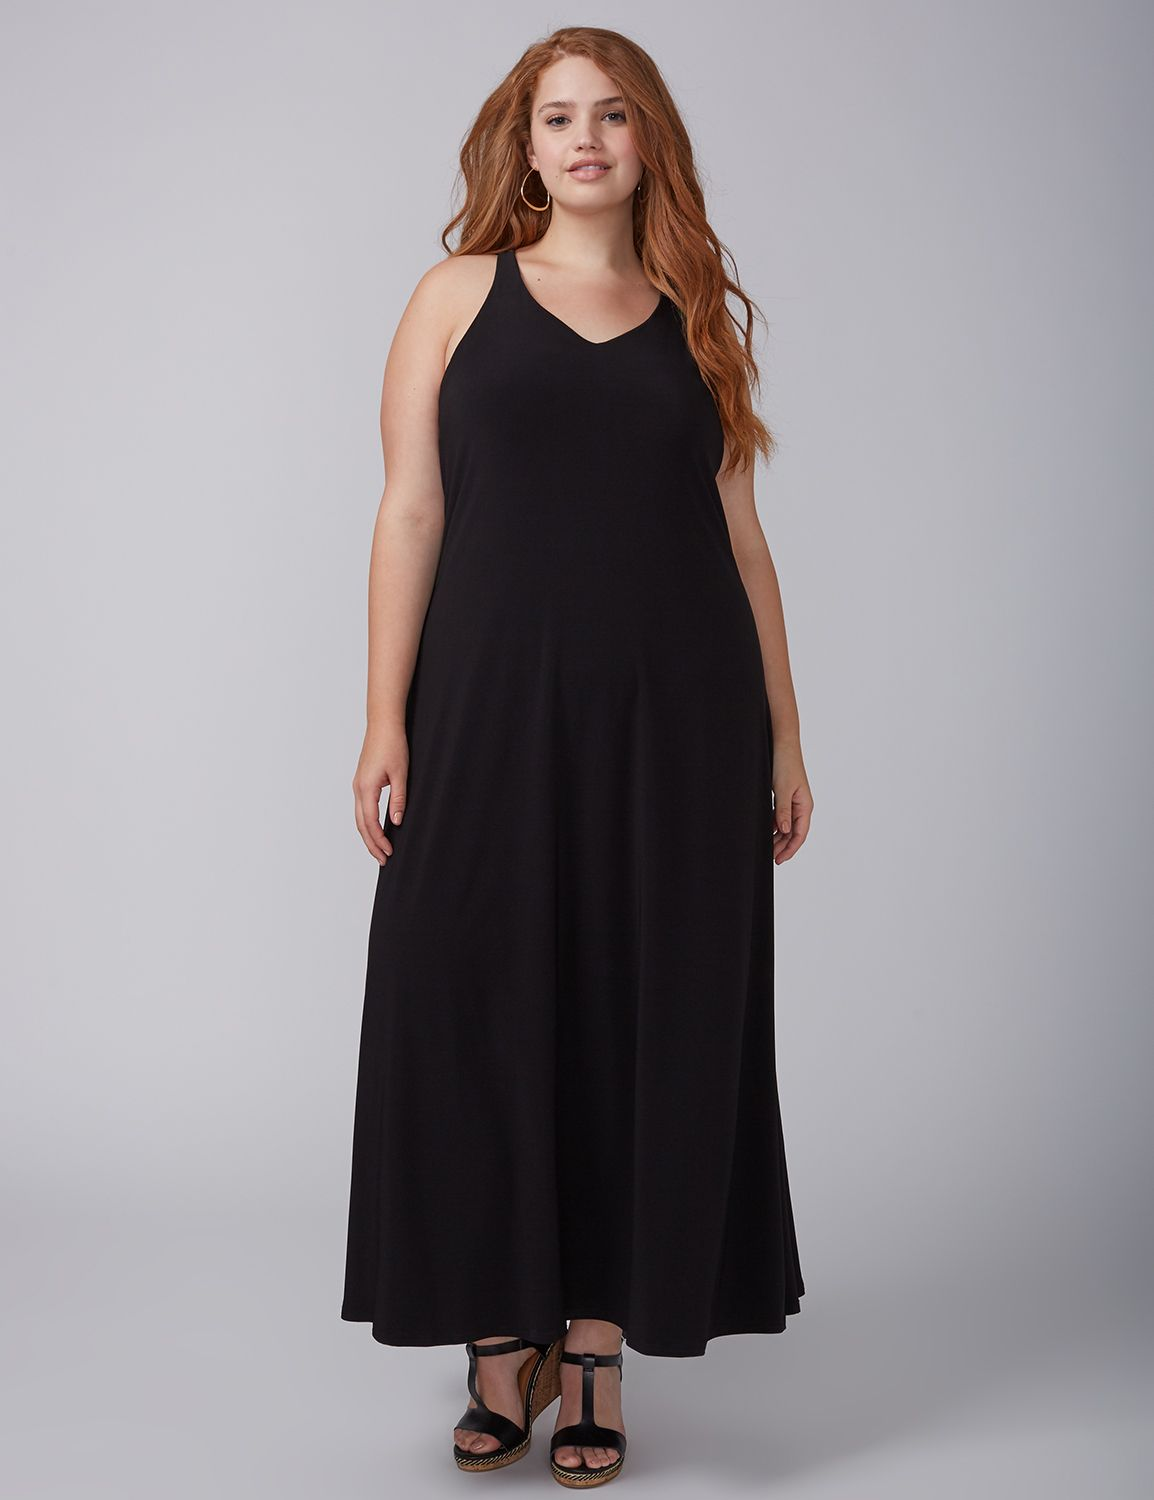 Black dress with lace sleeves plus size